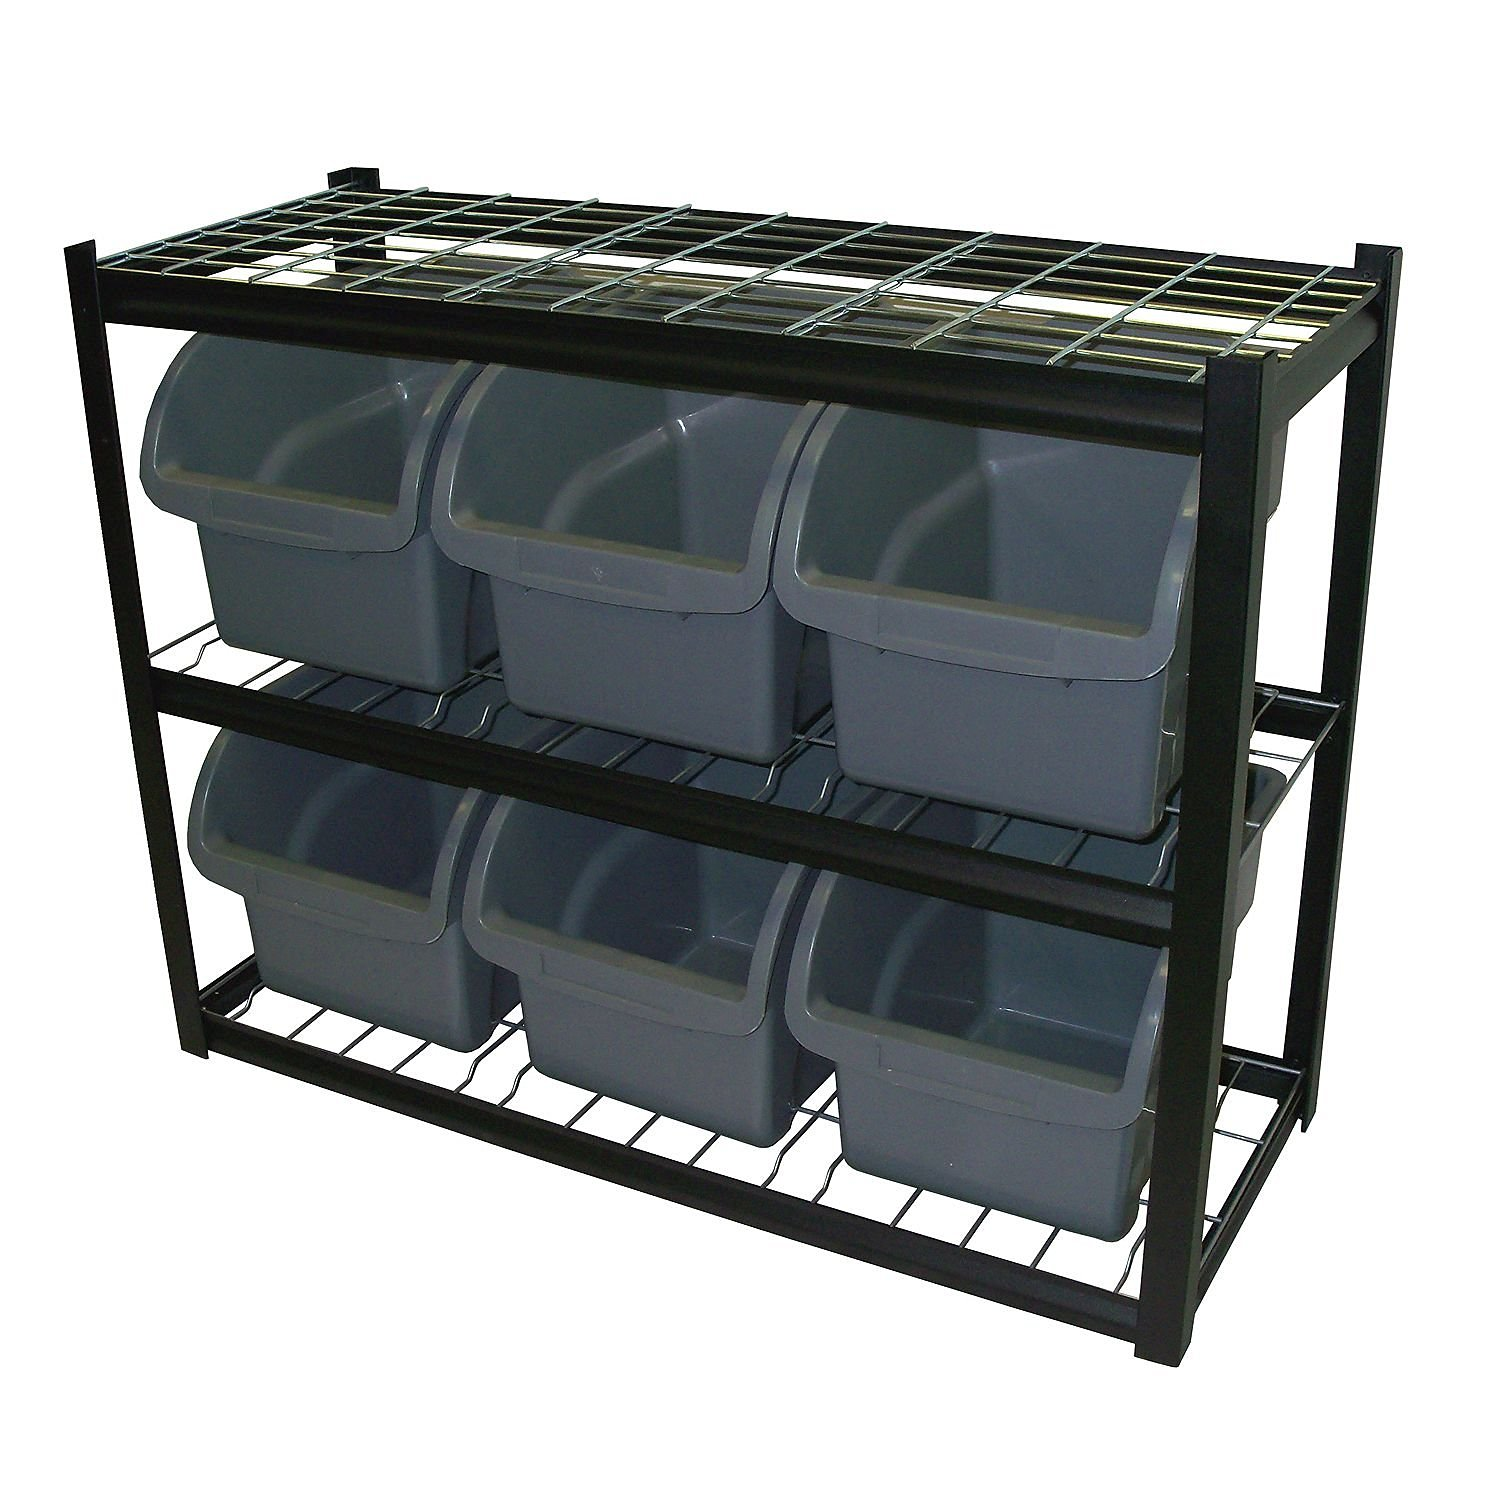 Get Quotations · Industrial Commercial Black Storage Unit, Organizer, Bin  Shelving, 6 Jumbo Bins